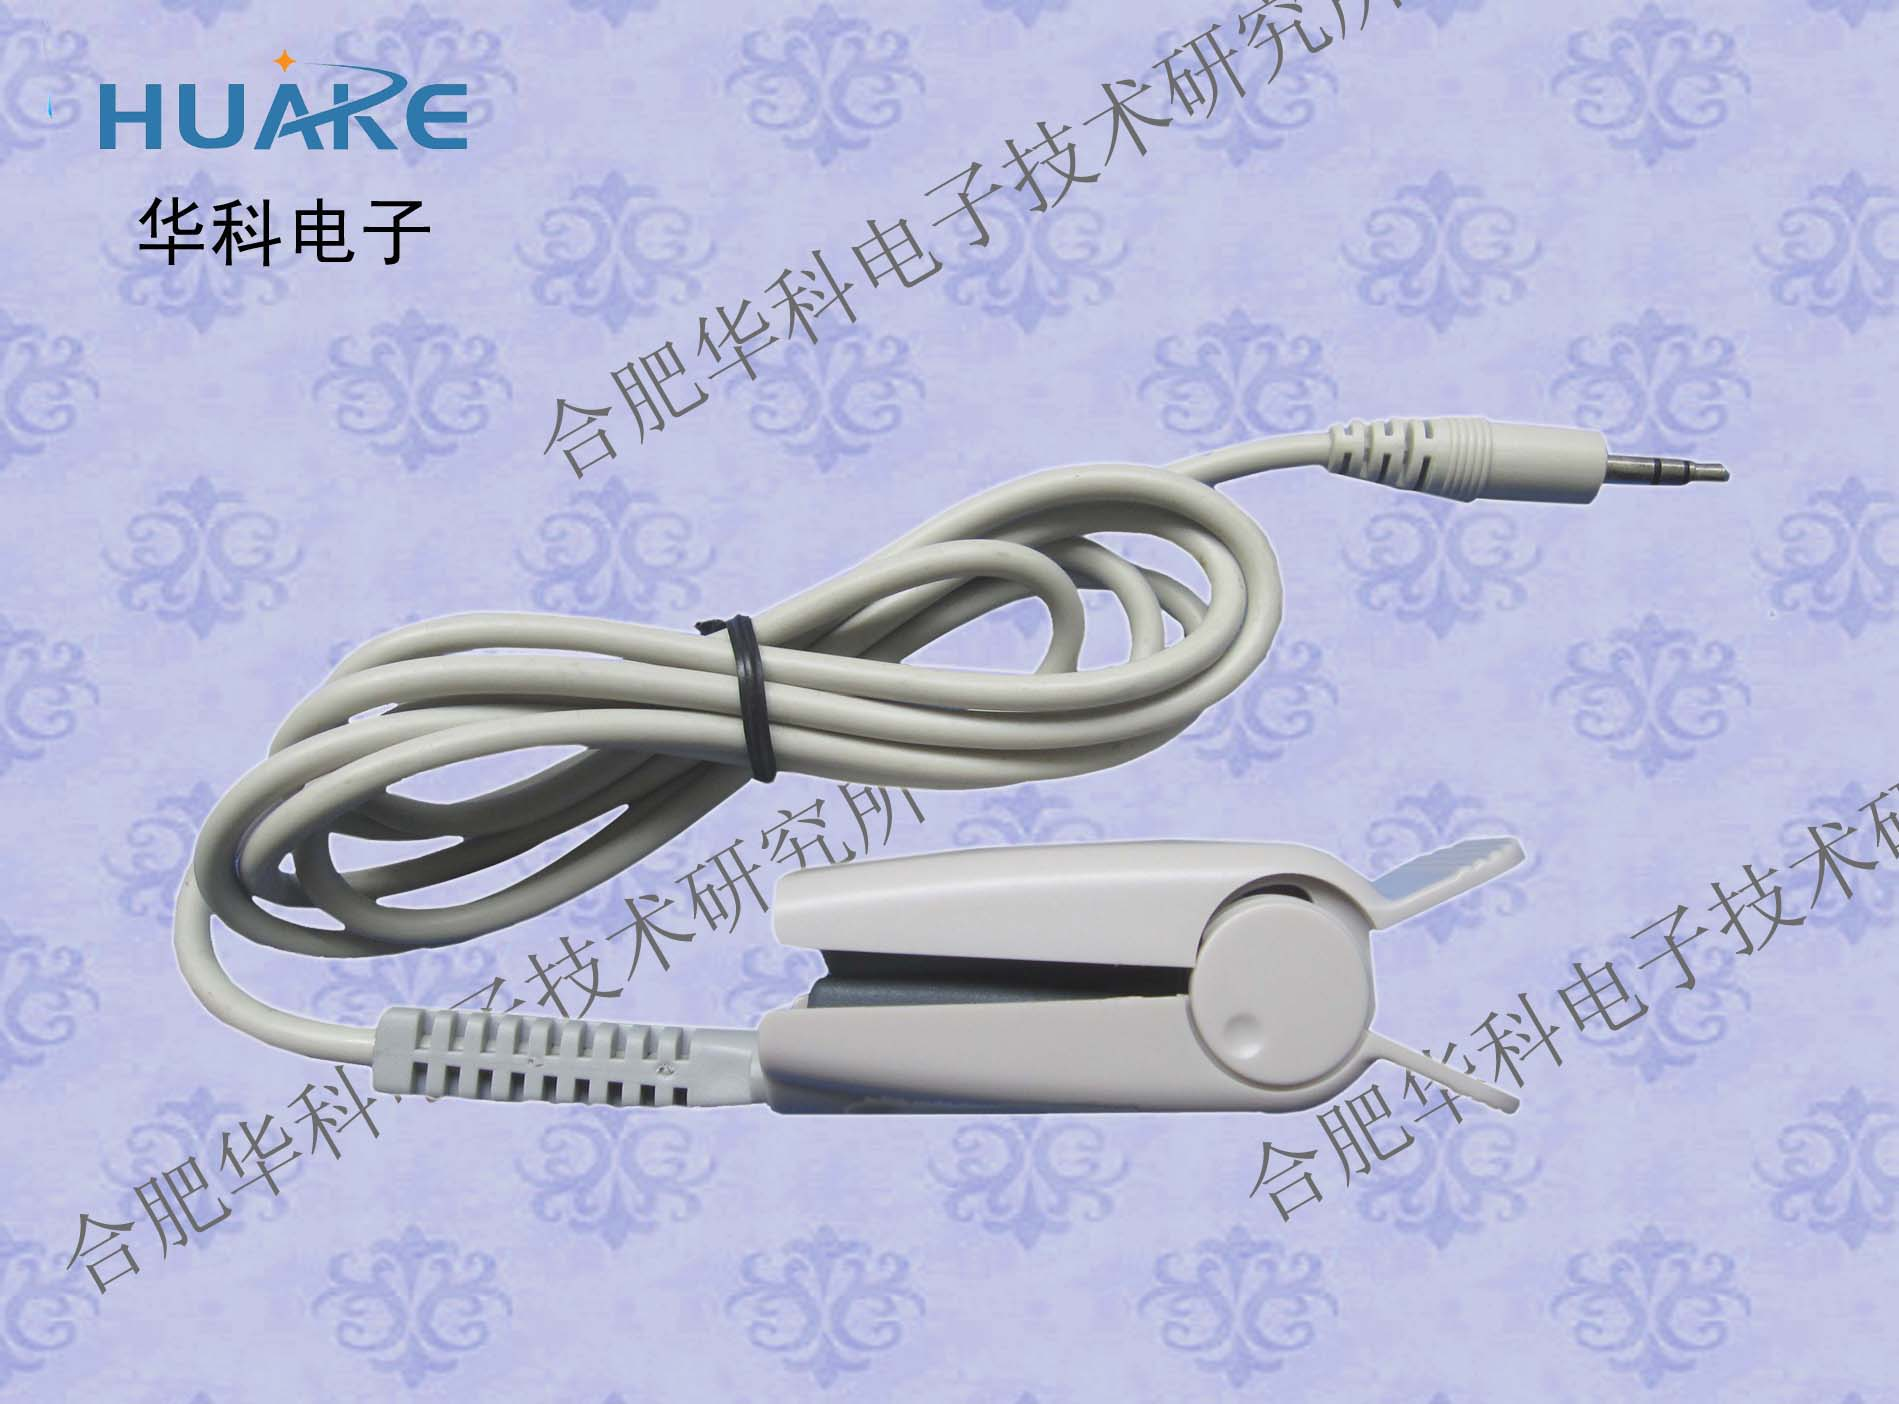 HKG-07A Pulse Sensor/Heart Rate/Pulse Rate Sensor/Photoelectric Pulse Sensor/Finger Clip SensorHKG-07A Pulse Sensor/Heart Rate/Pulse Rate Sensor/Photoelectric Pulse Sensor/Finger Clip Sensor